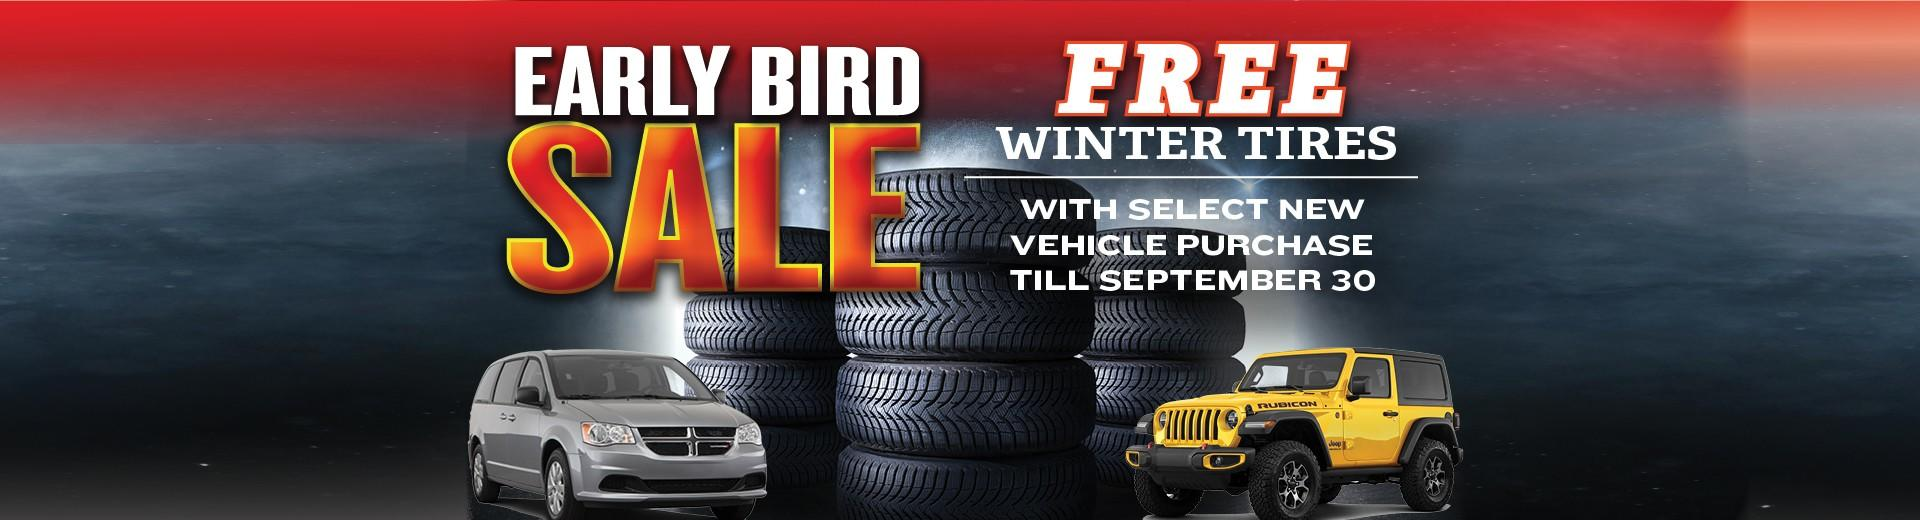 Early Bird Winter Tire Sale at Moncton Chrysler Jeep Dodge in 1365 Mountain Road